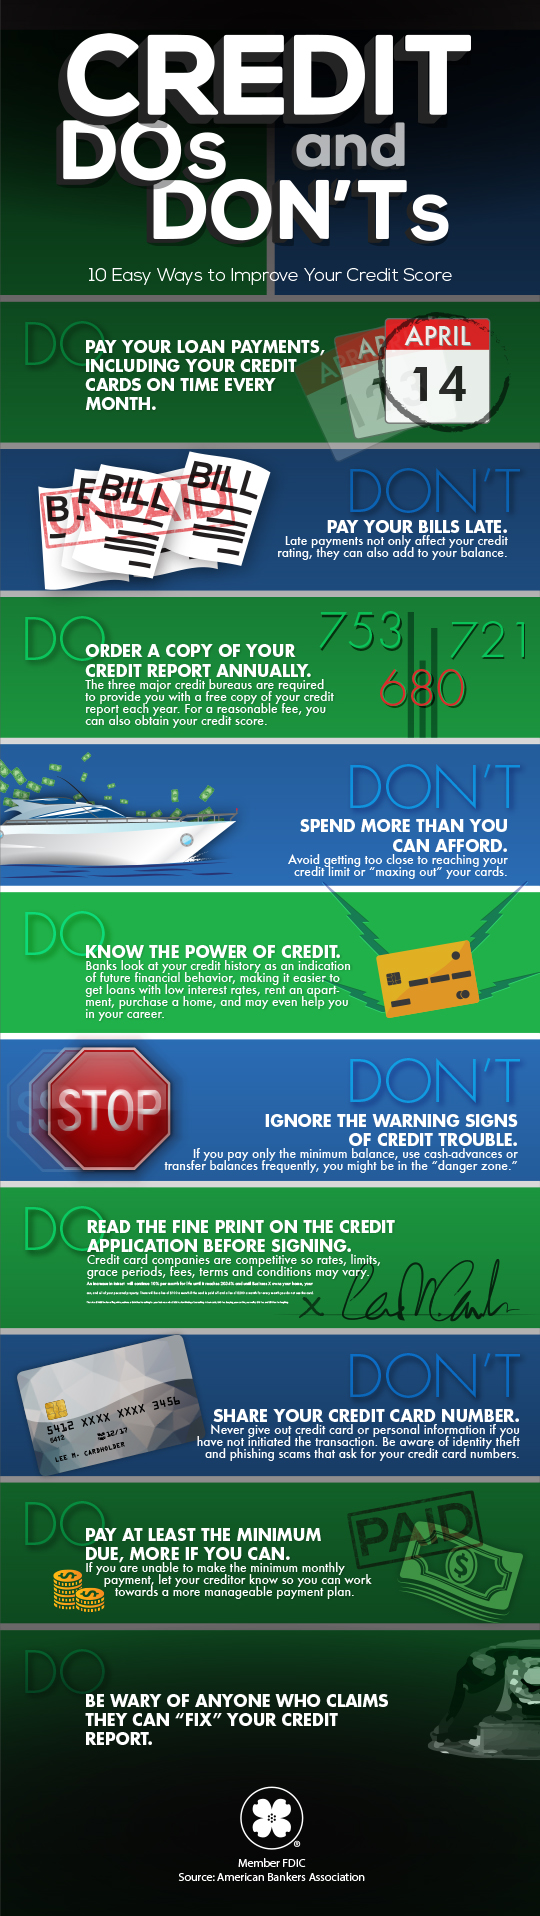 Infographic with information about improving your credit score